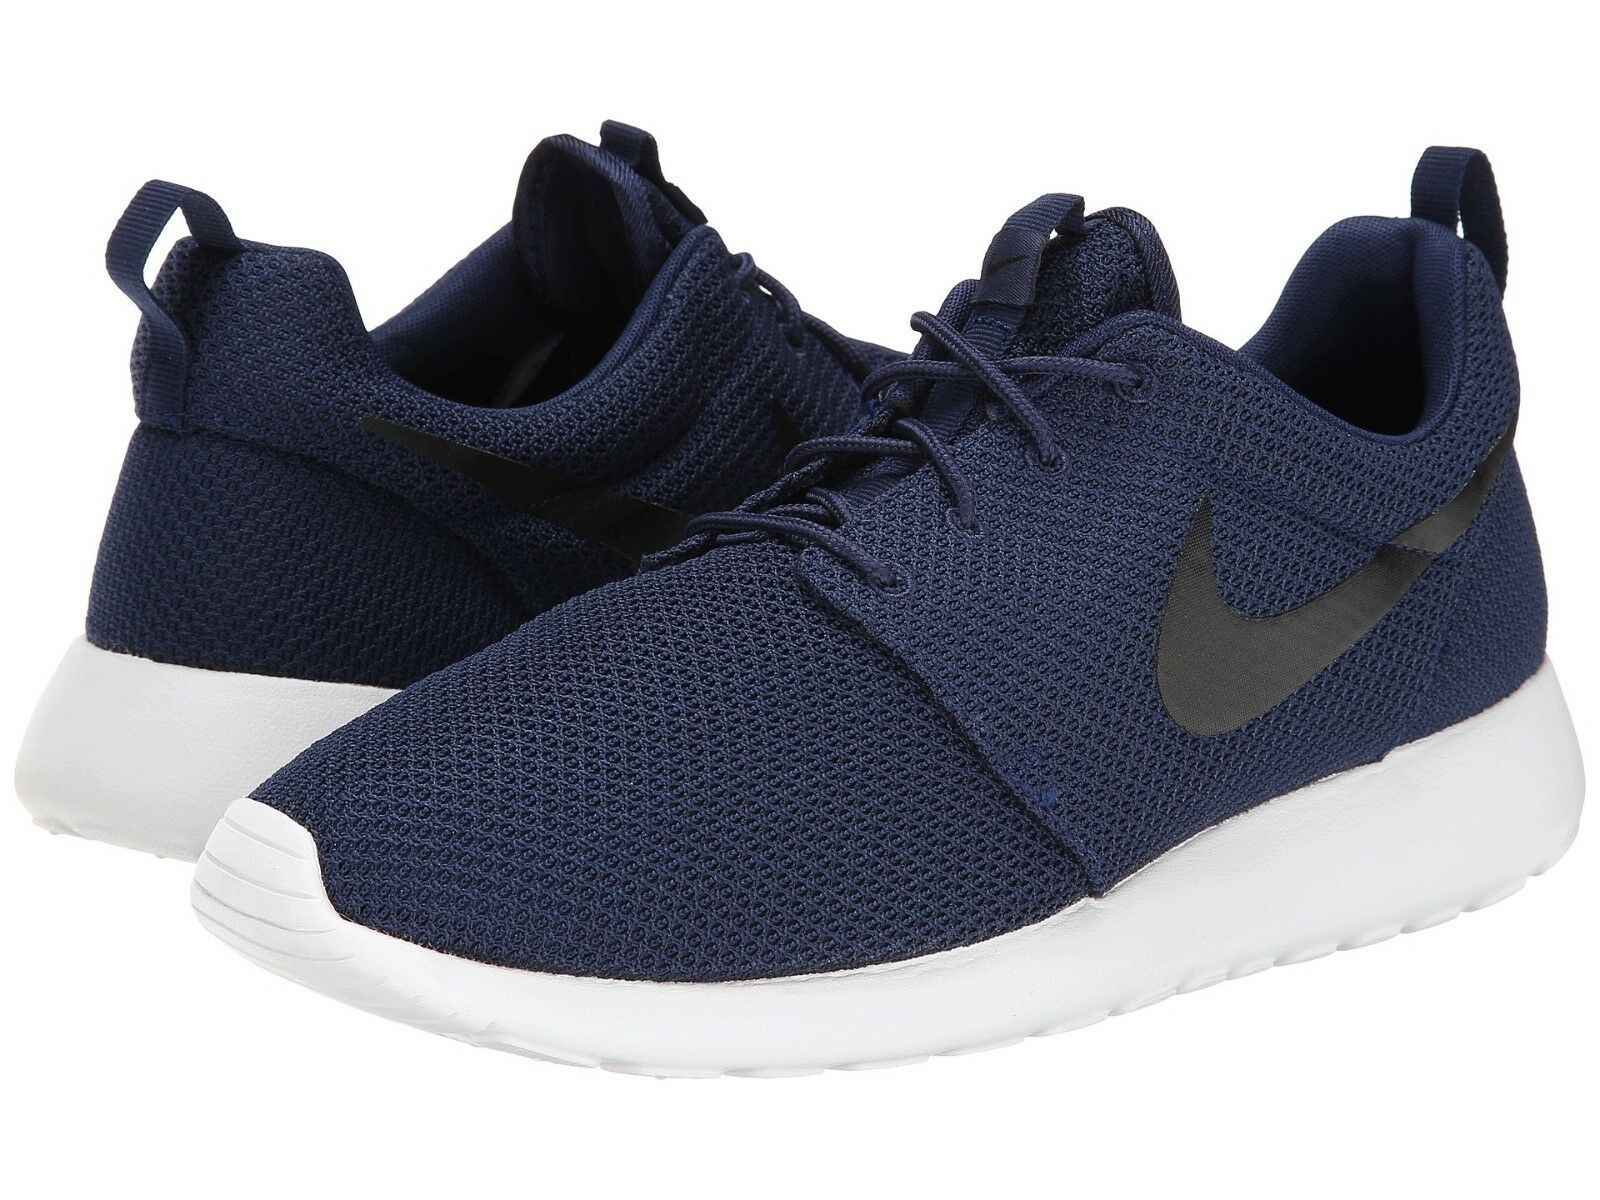 Men's Nike Roshe One Lifestyle shoes Midnight Navy Wht-Blk NIB 8-12 511881-405